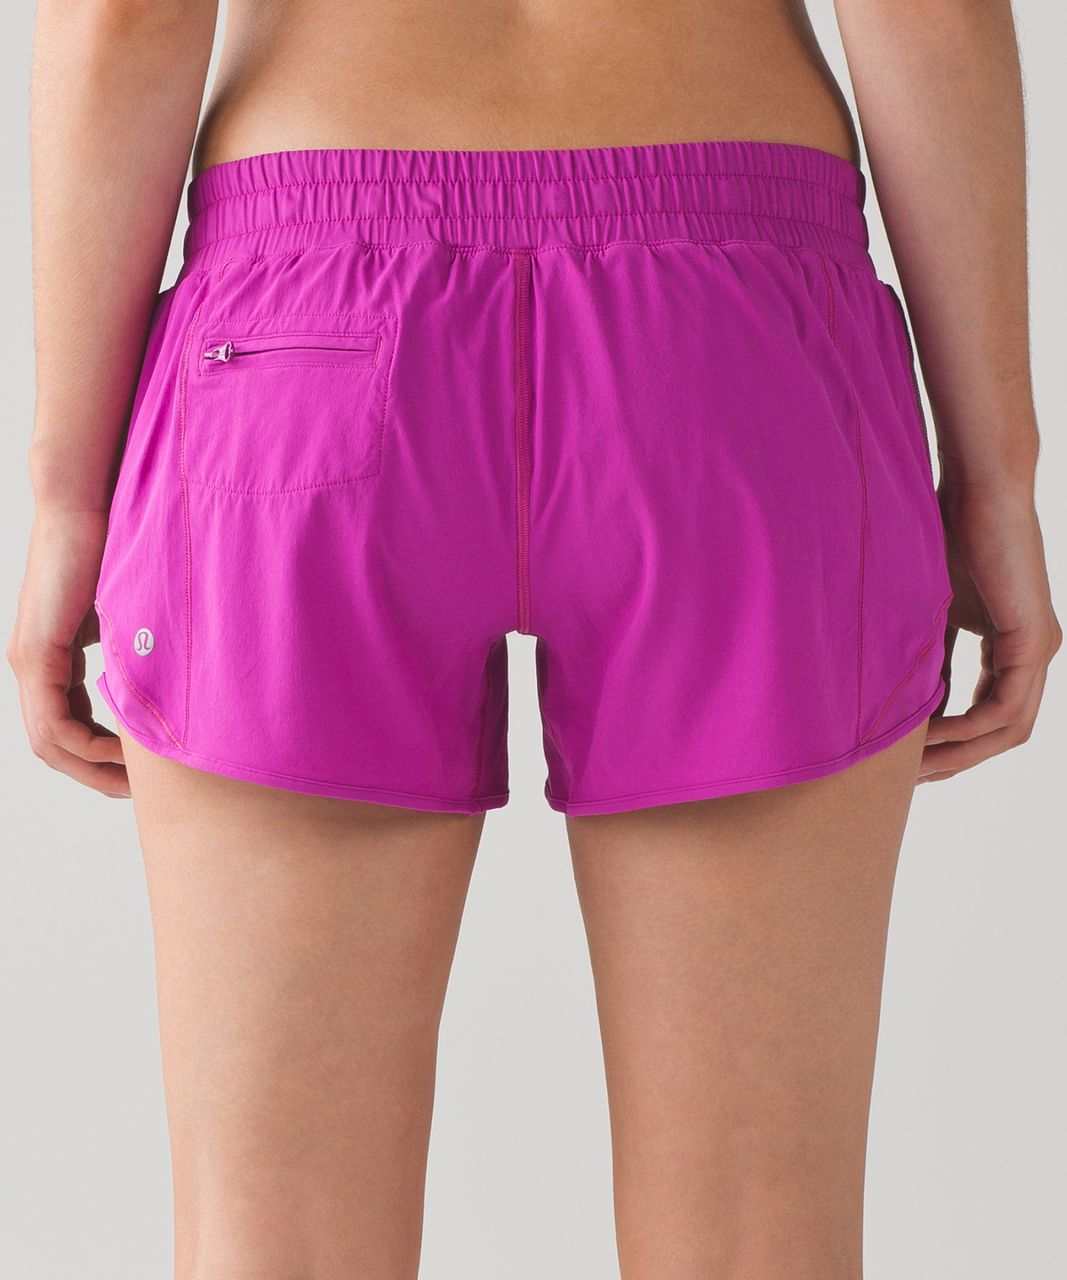 "Lululemon Hotty Hot Short (Long 4"") - Polar Pink"